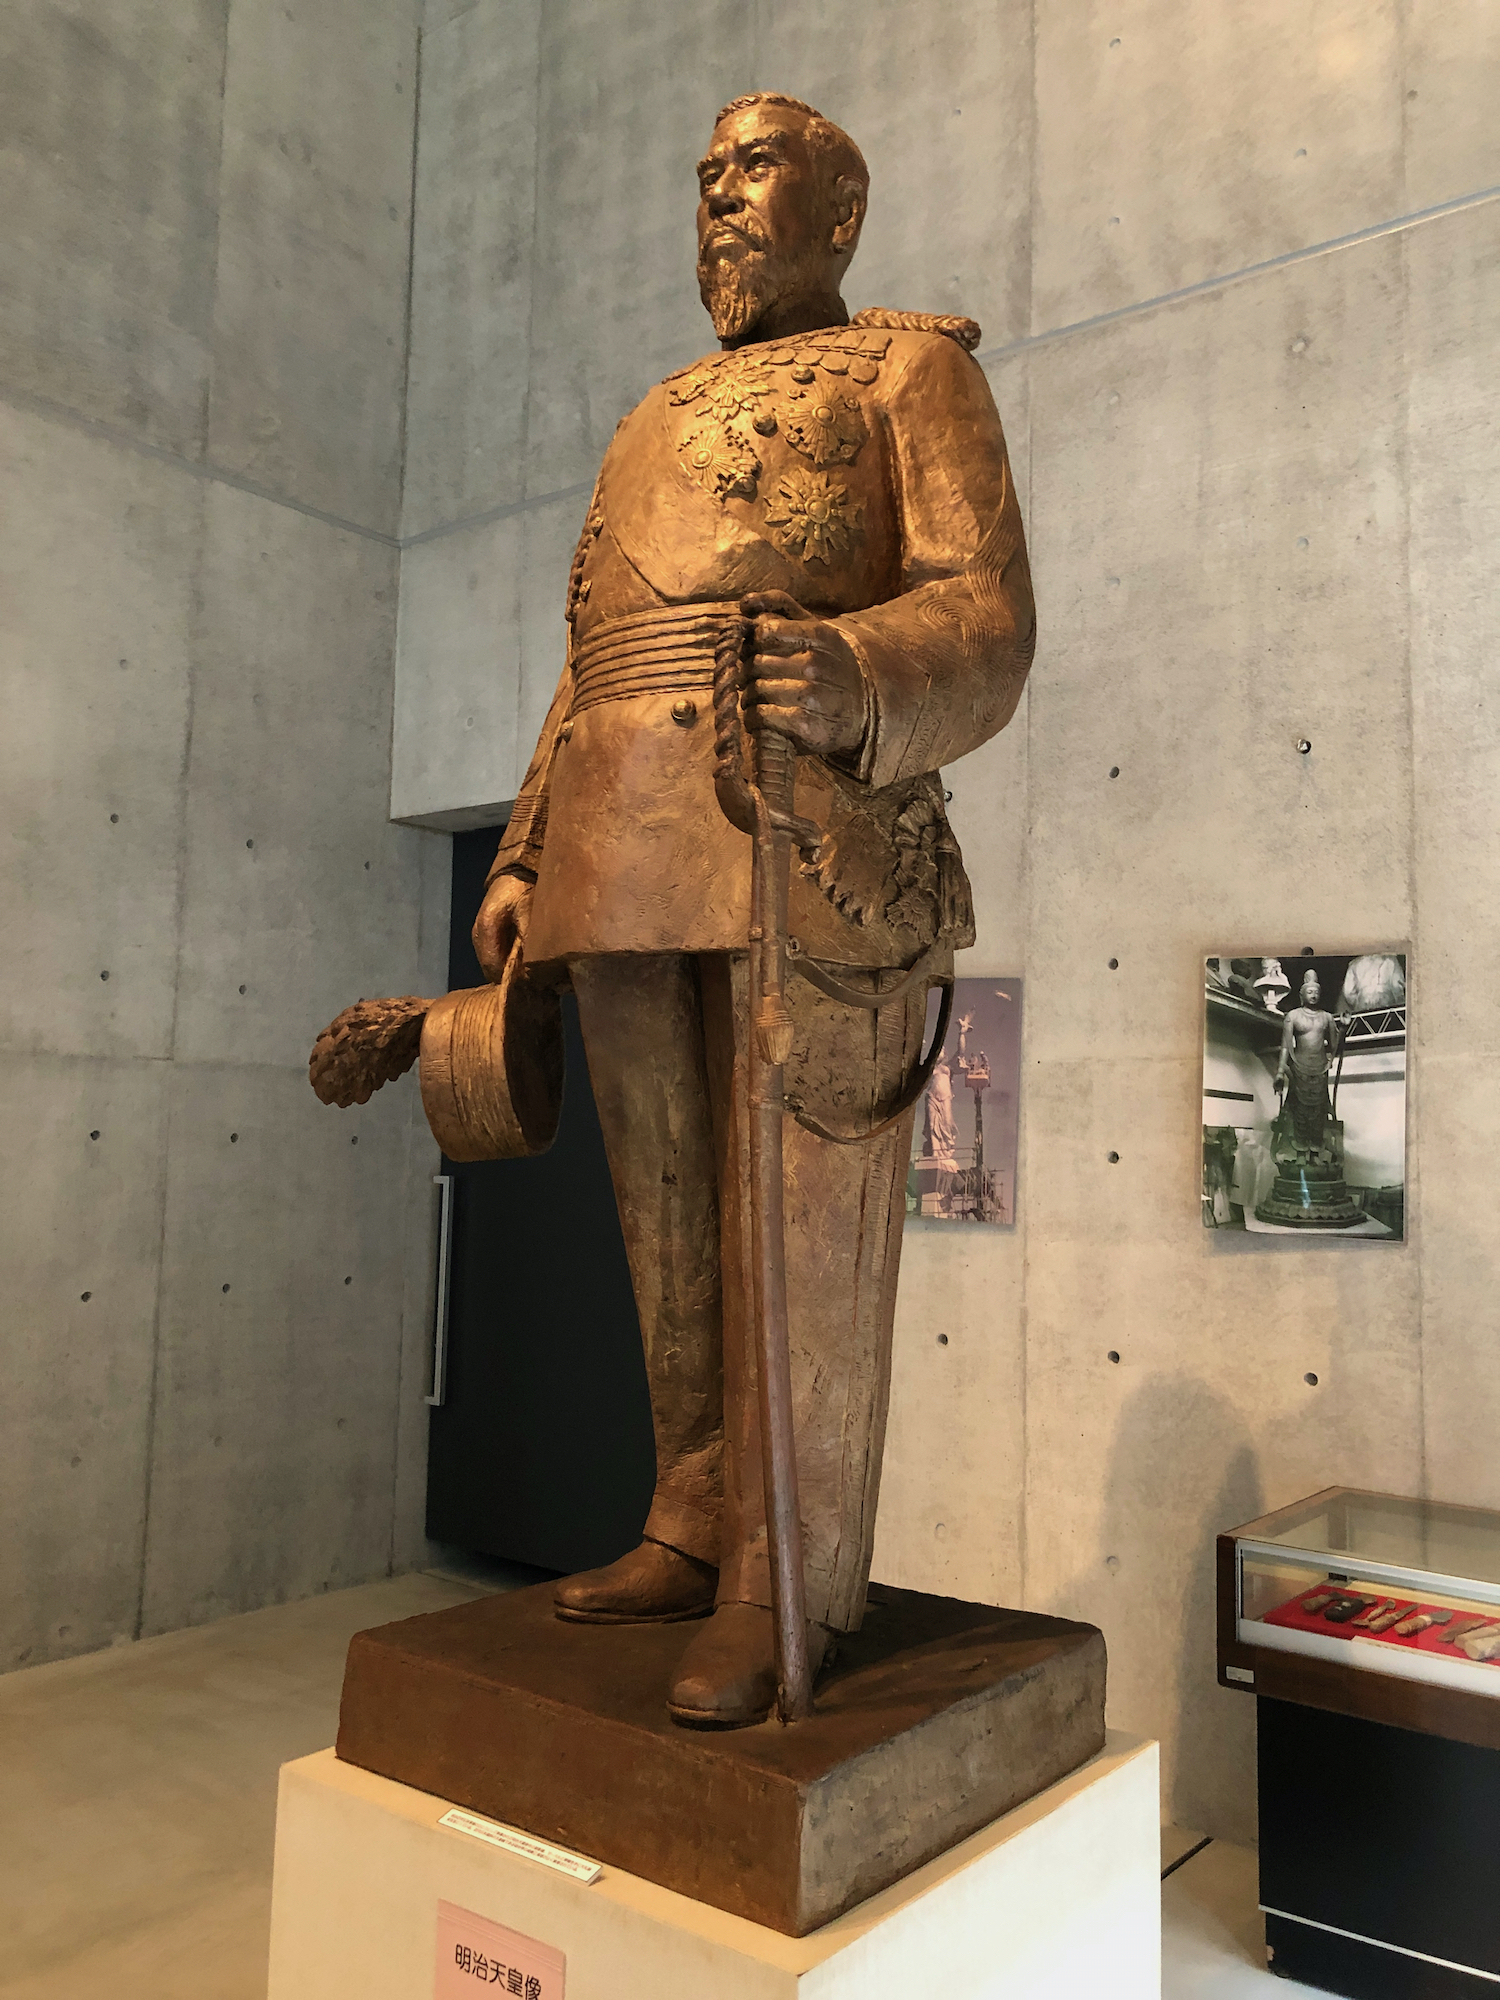 Statue of Meiji emperor in military regalia holding a sword and hat with plume (full size)